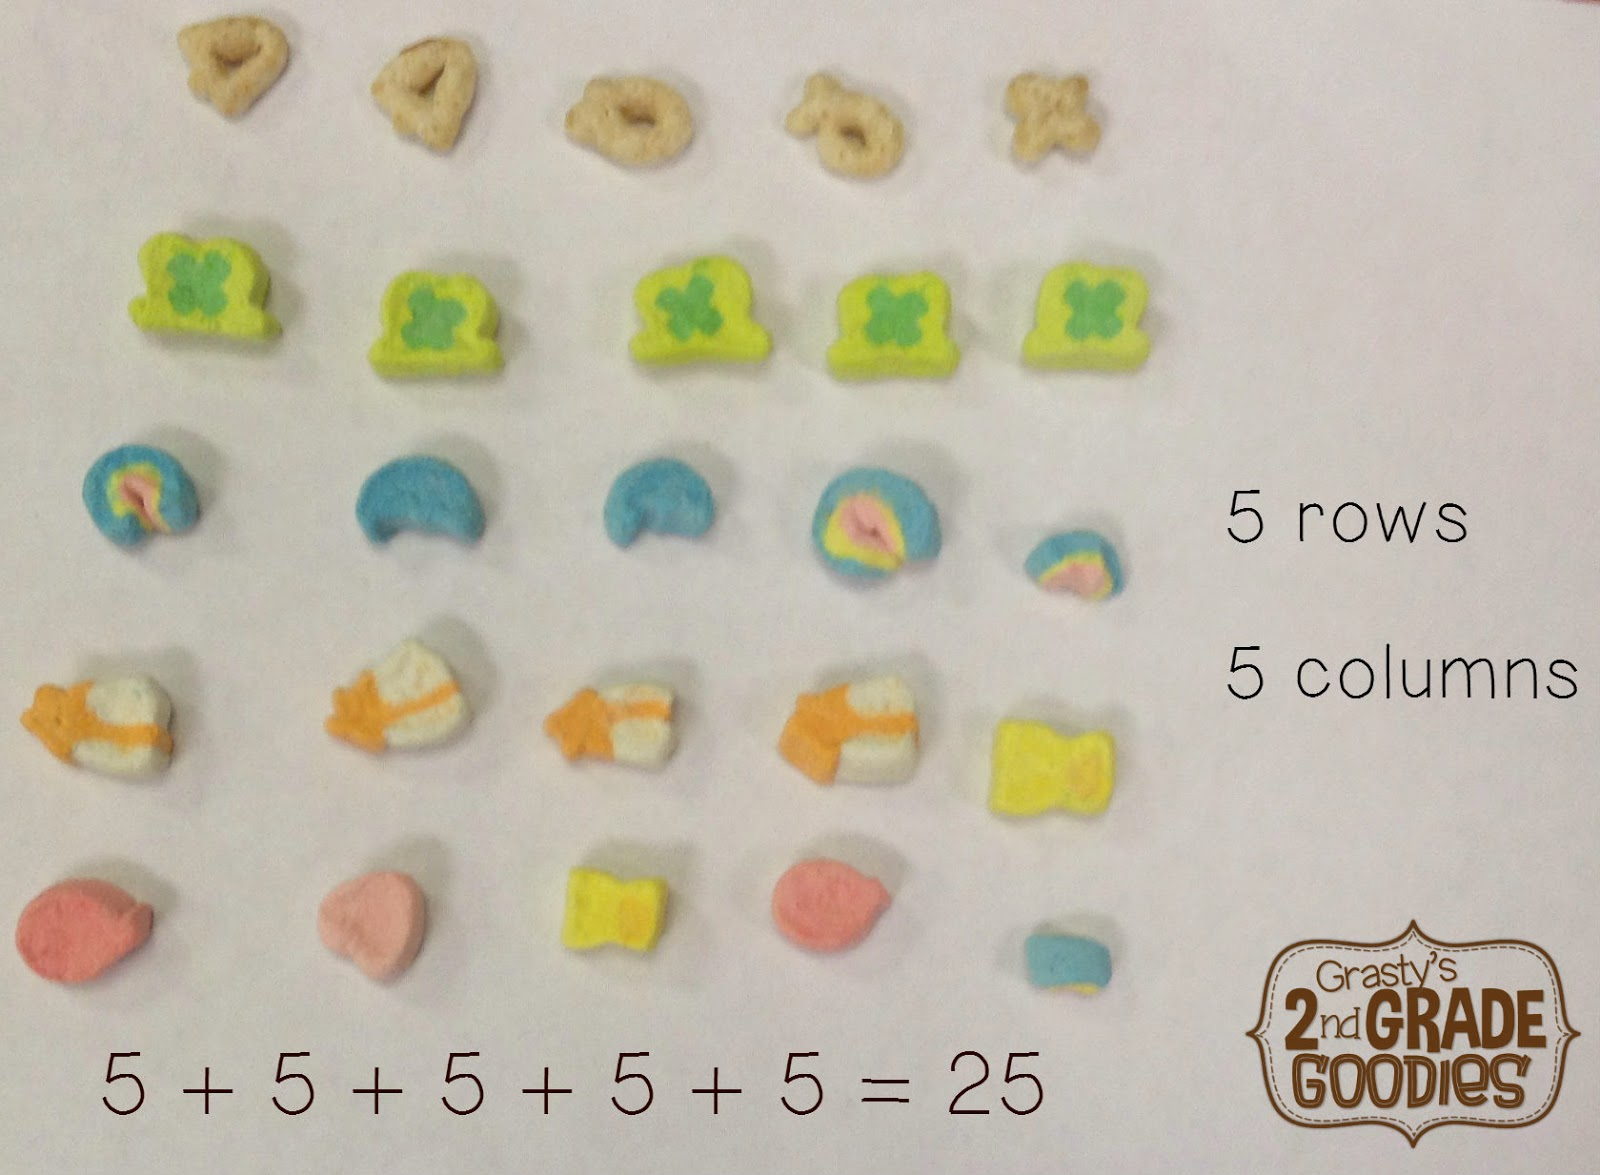 hight resolution of Grasty's 2nd Grade Goodies: Addition Arrays and Cereal